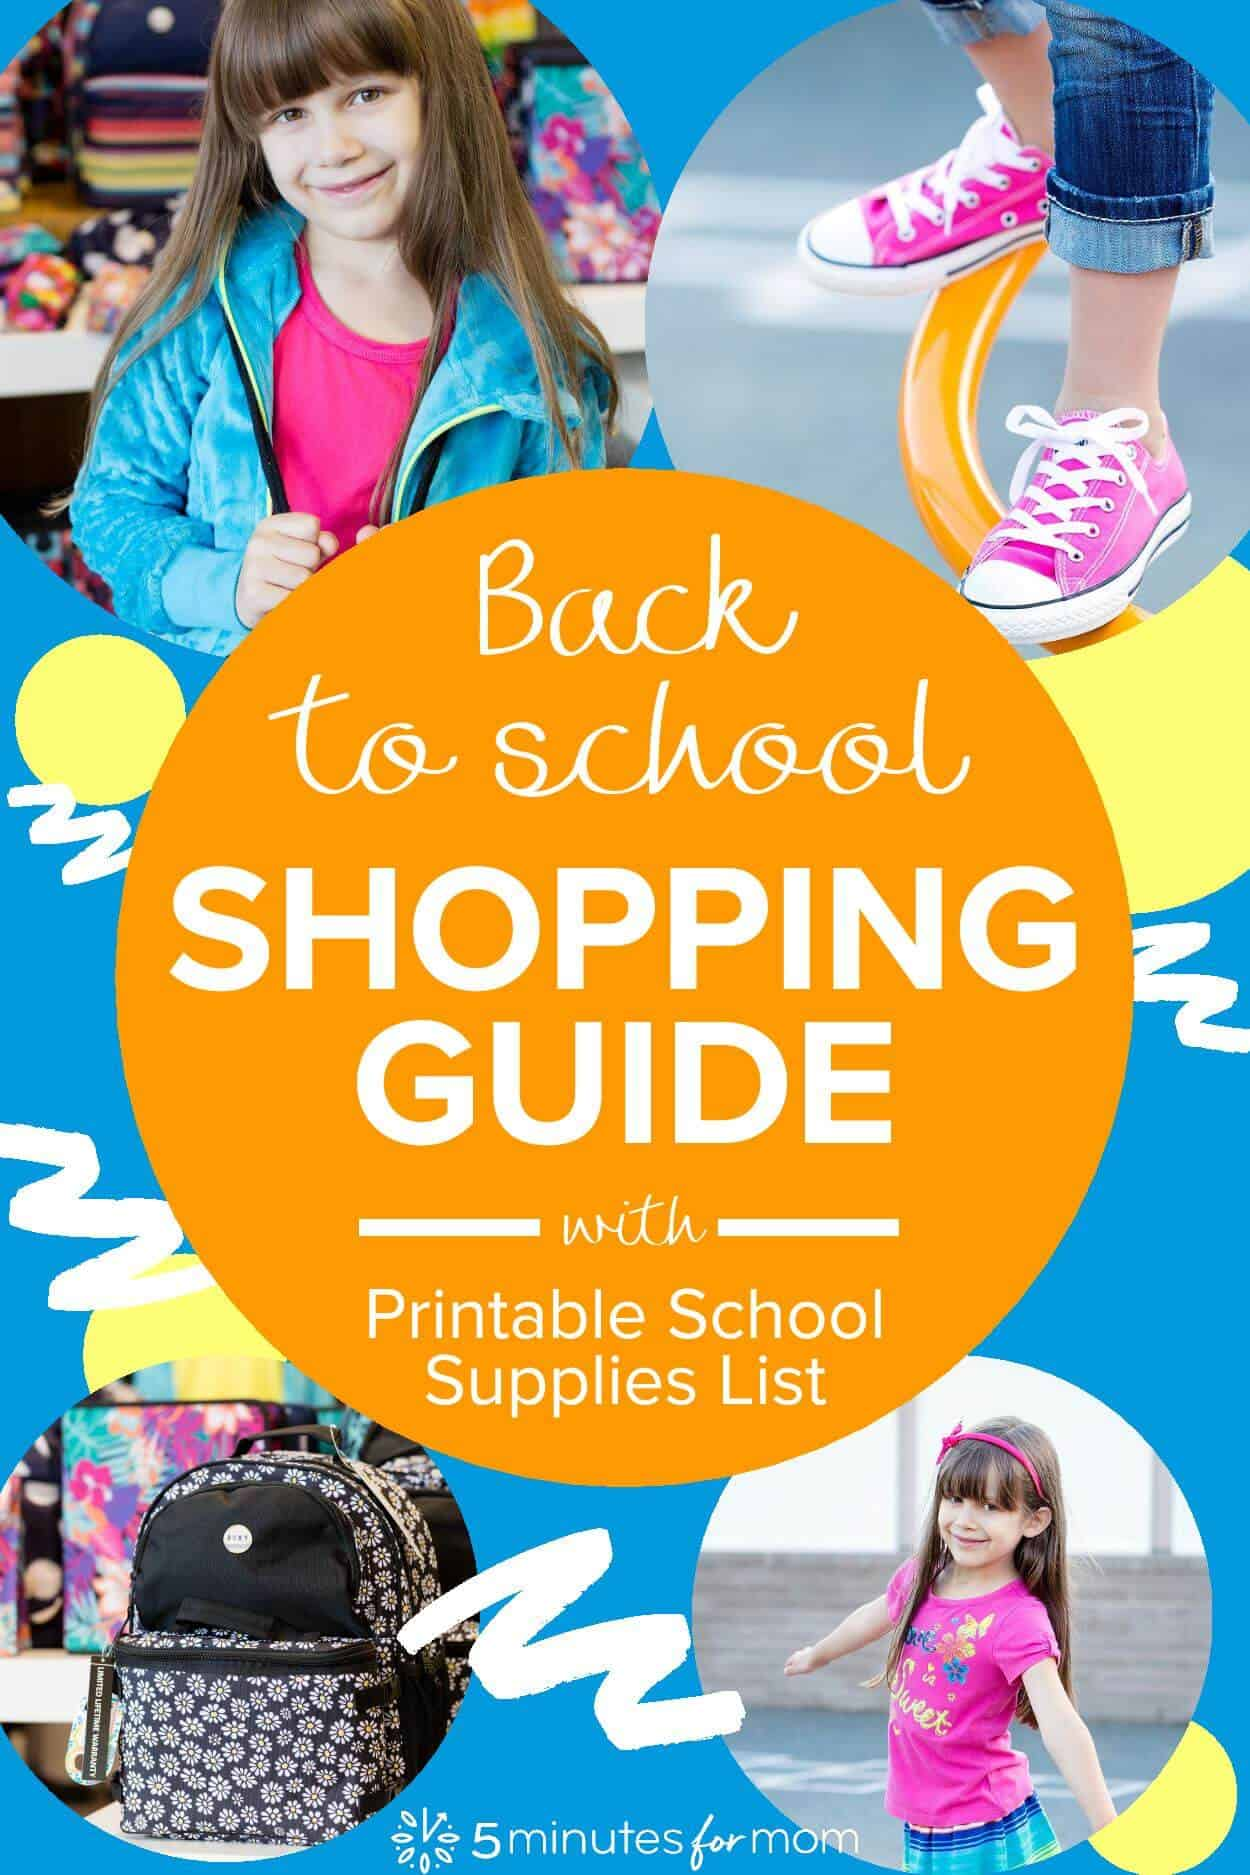 Ultimate Back To School Guide with Printable School Supplies